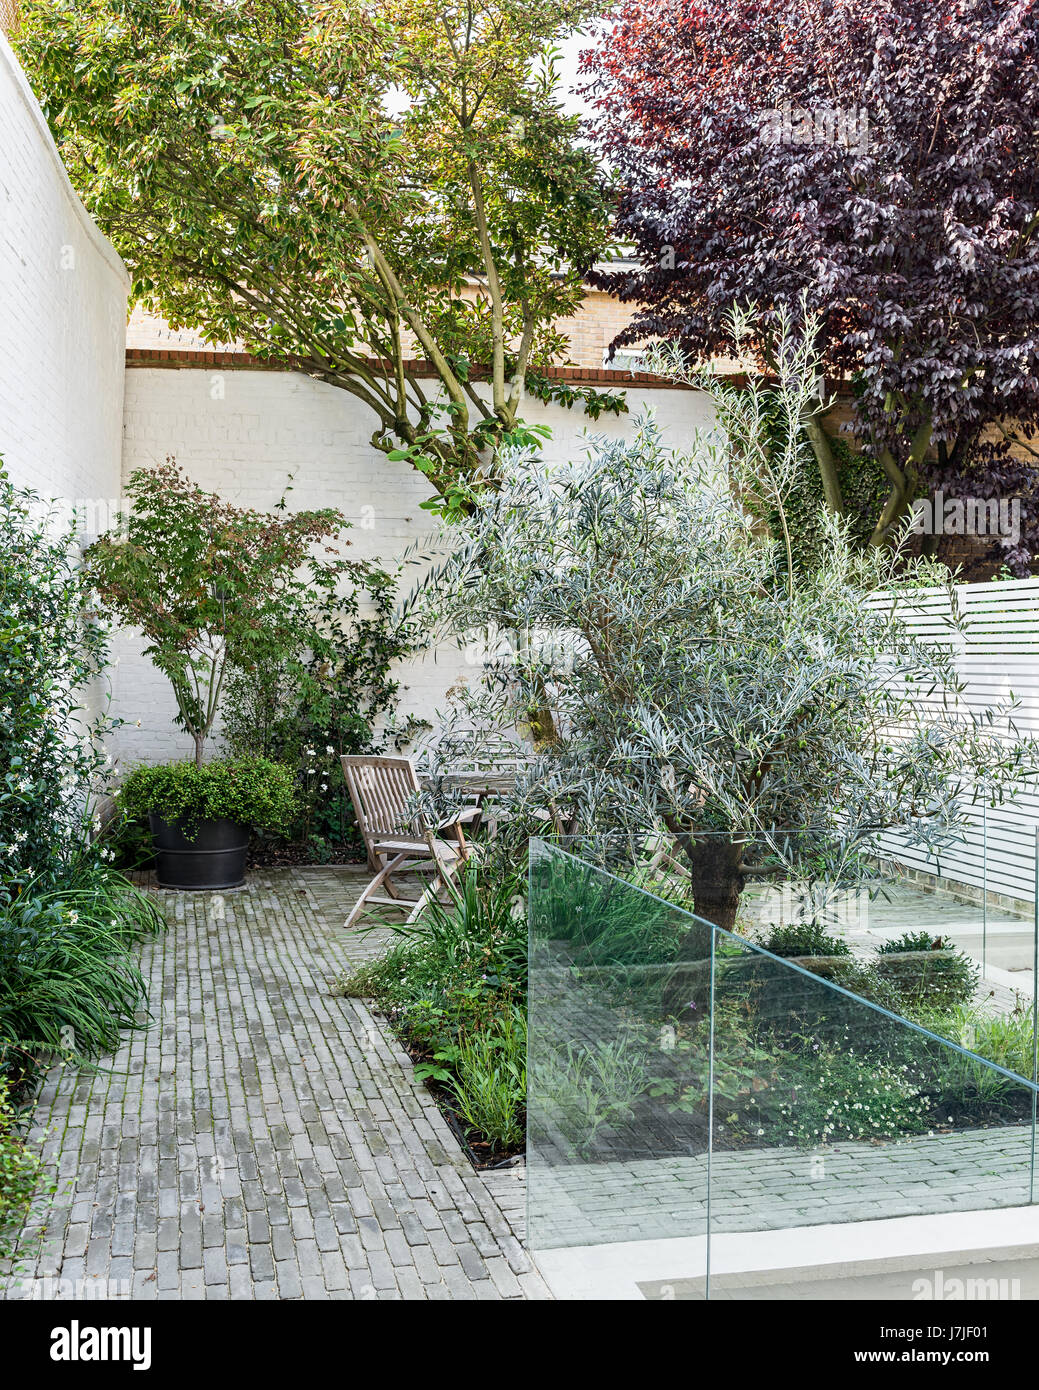 White Painted Walls And Pale Horizontal Wood Trellis In Garden With  Traditional Vande Moortel Pavers. Landscaping By Garden Makers.